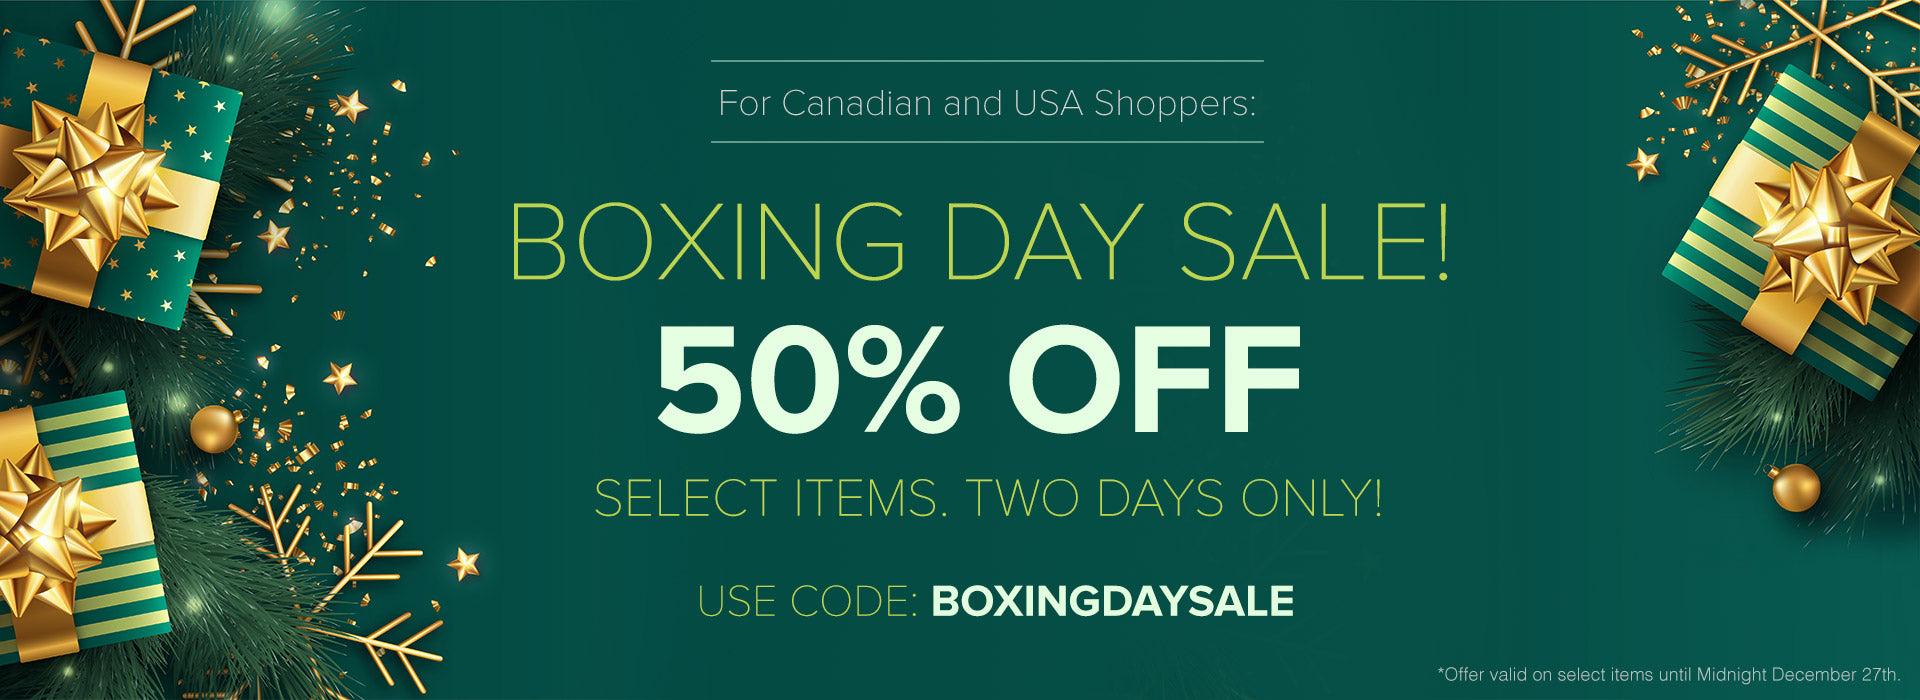 Boxing Day Sale - 50% Off Select Items!